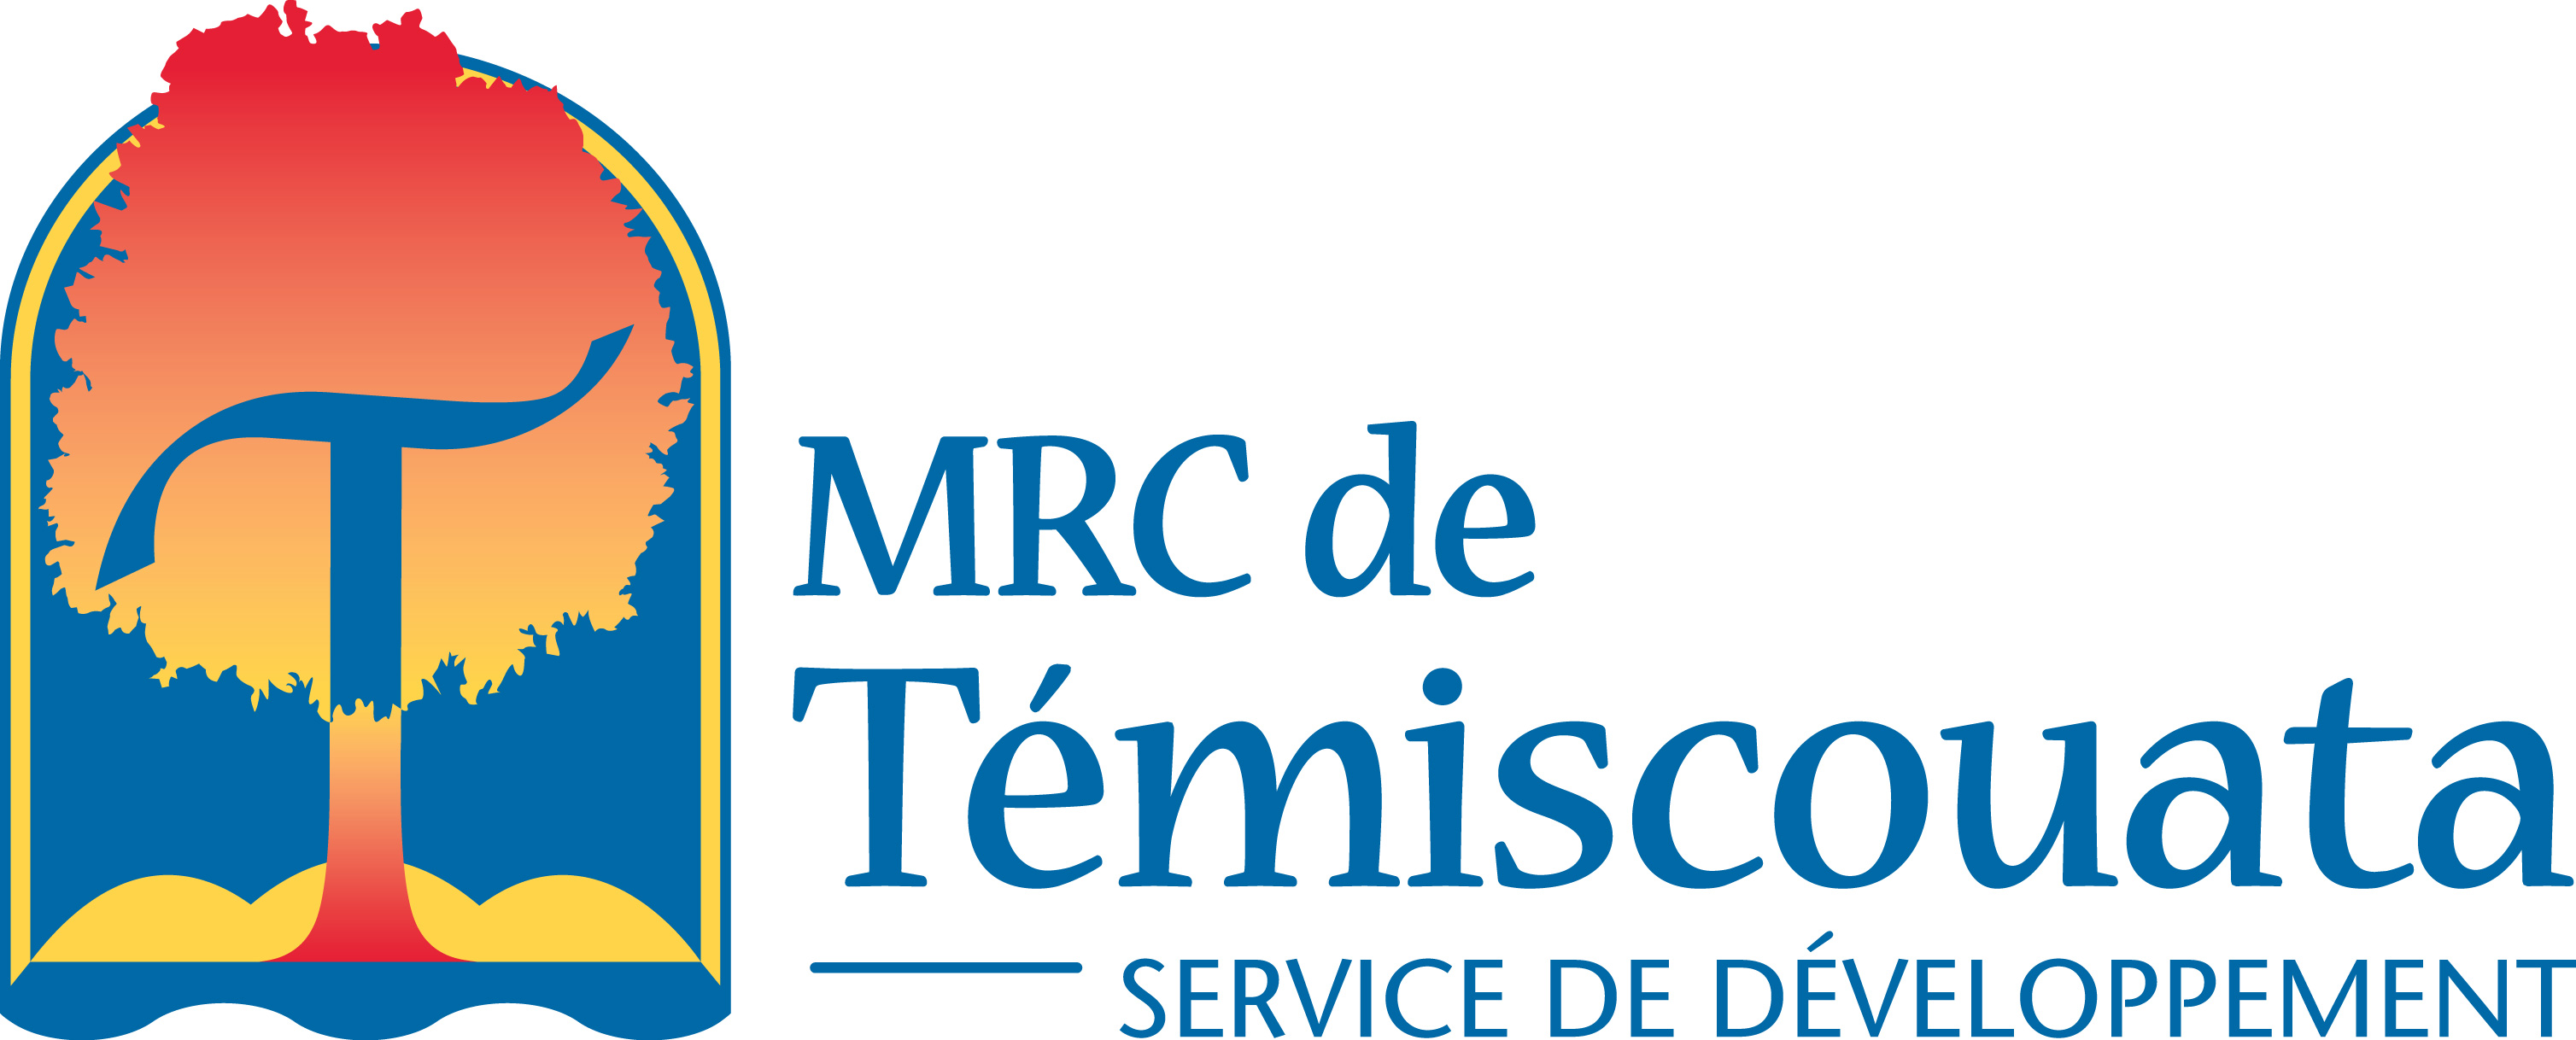 1 MRC Temiscouata developpement